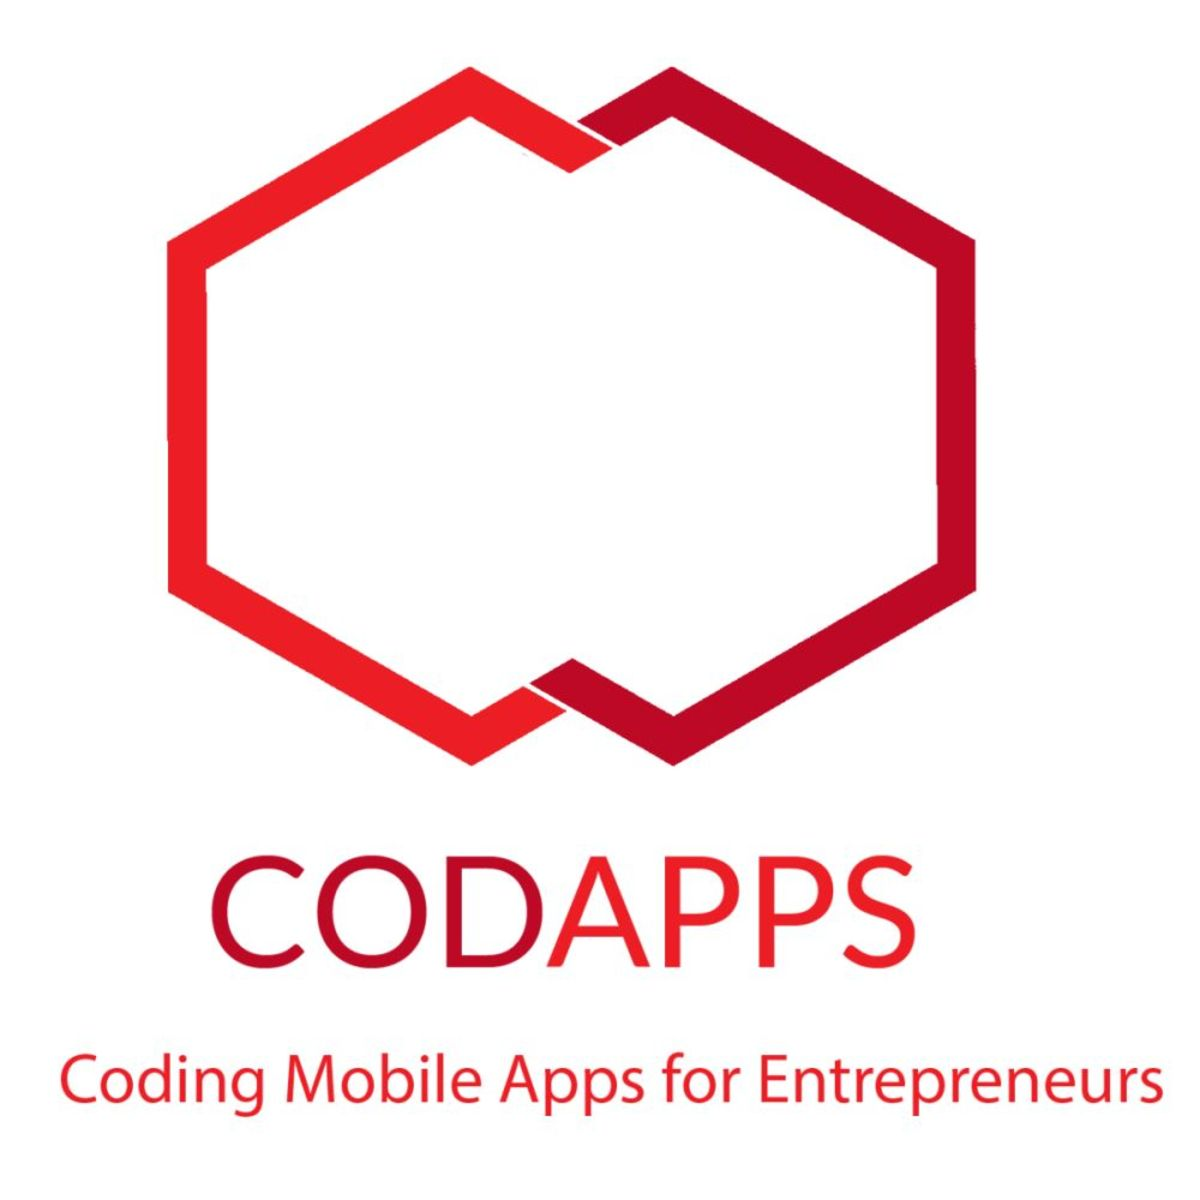 CODAPPS: Coding mobile apps for entrepreneurs course image